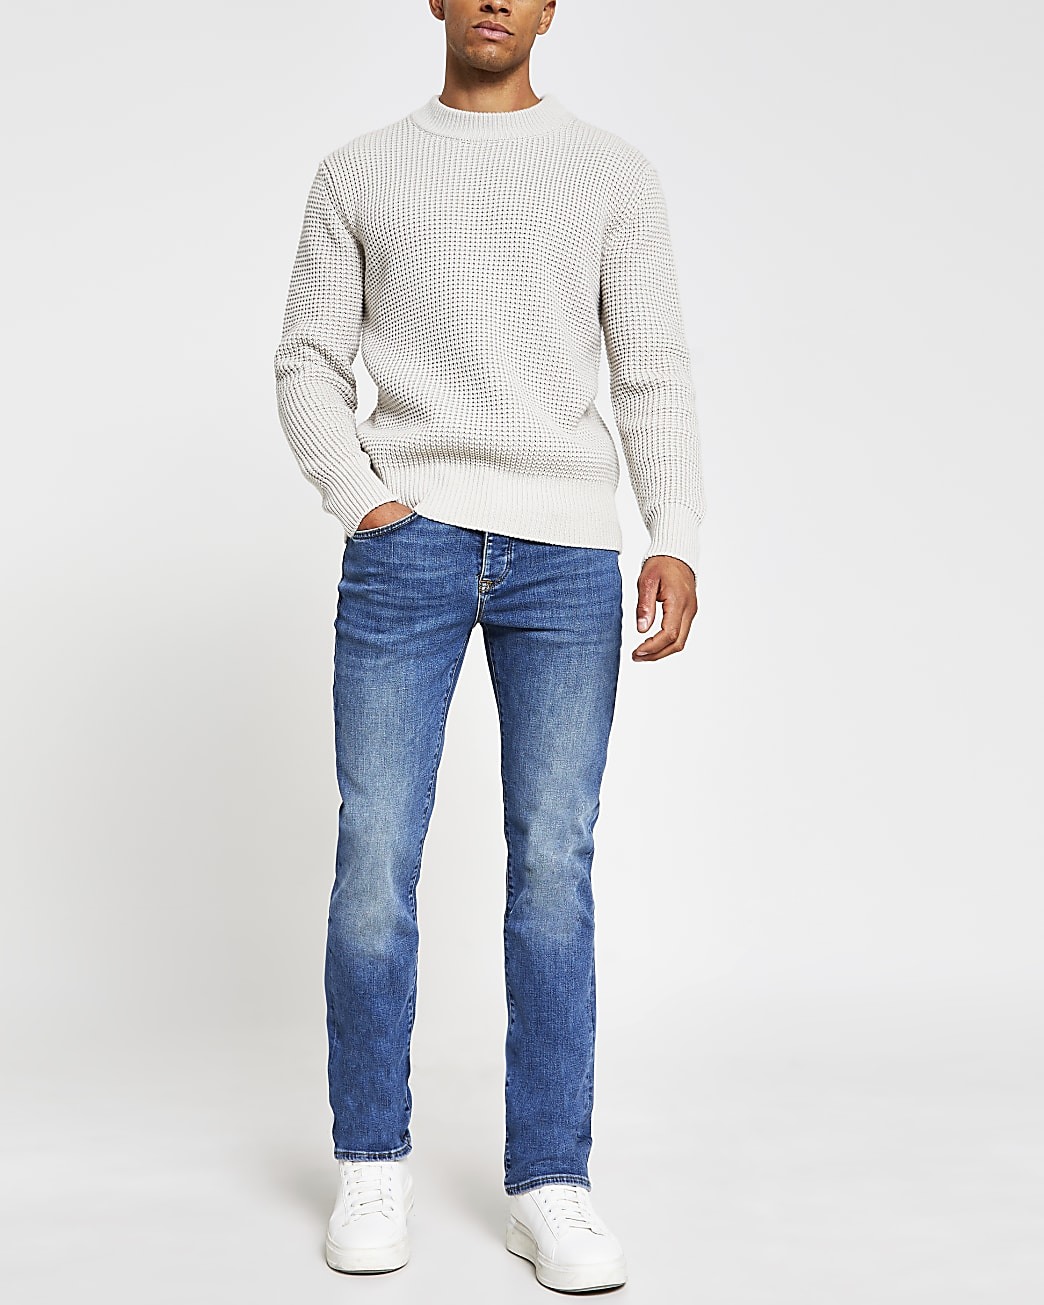 Blue washed bootcut jeans